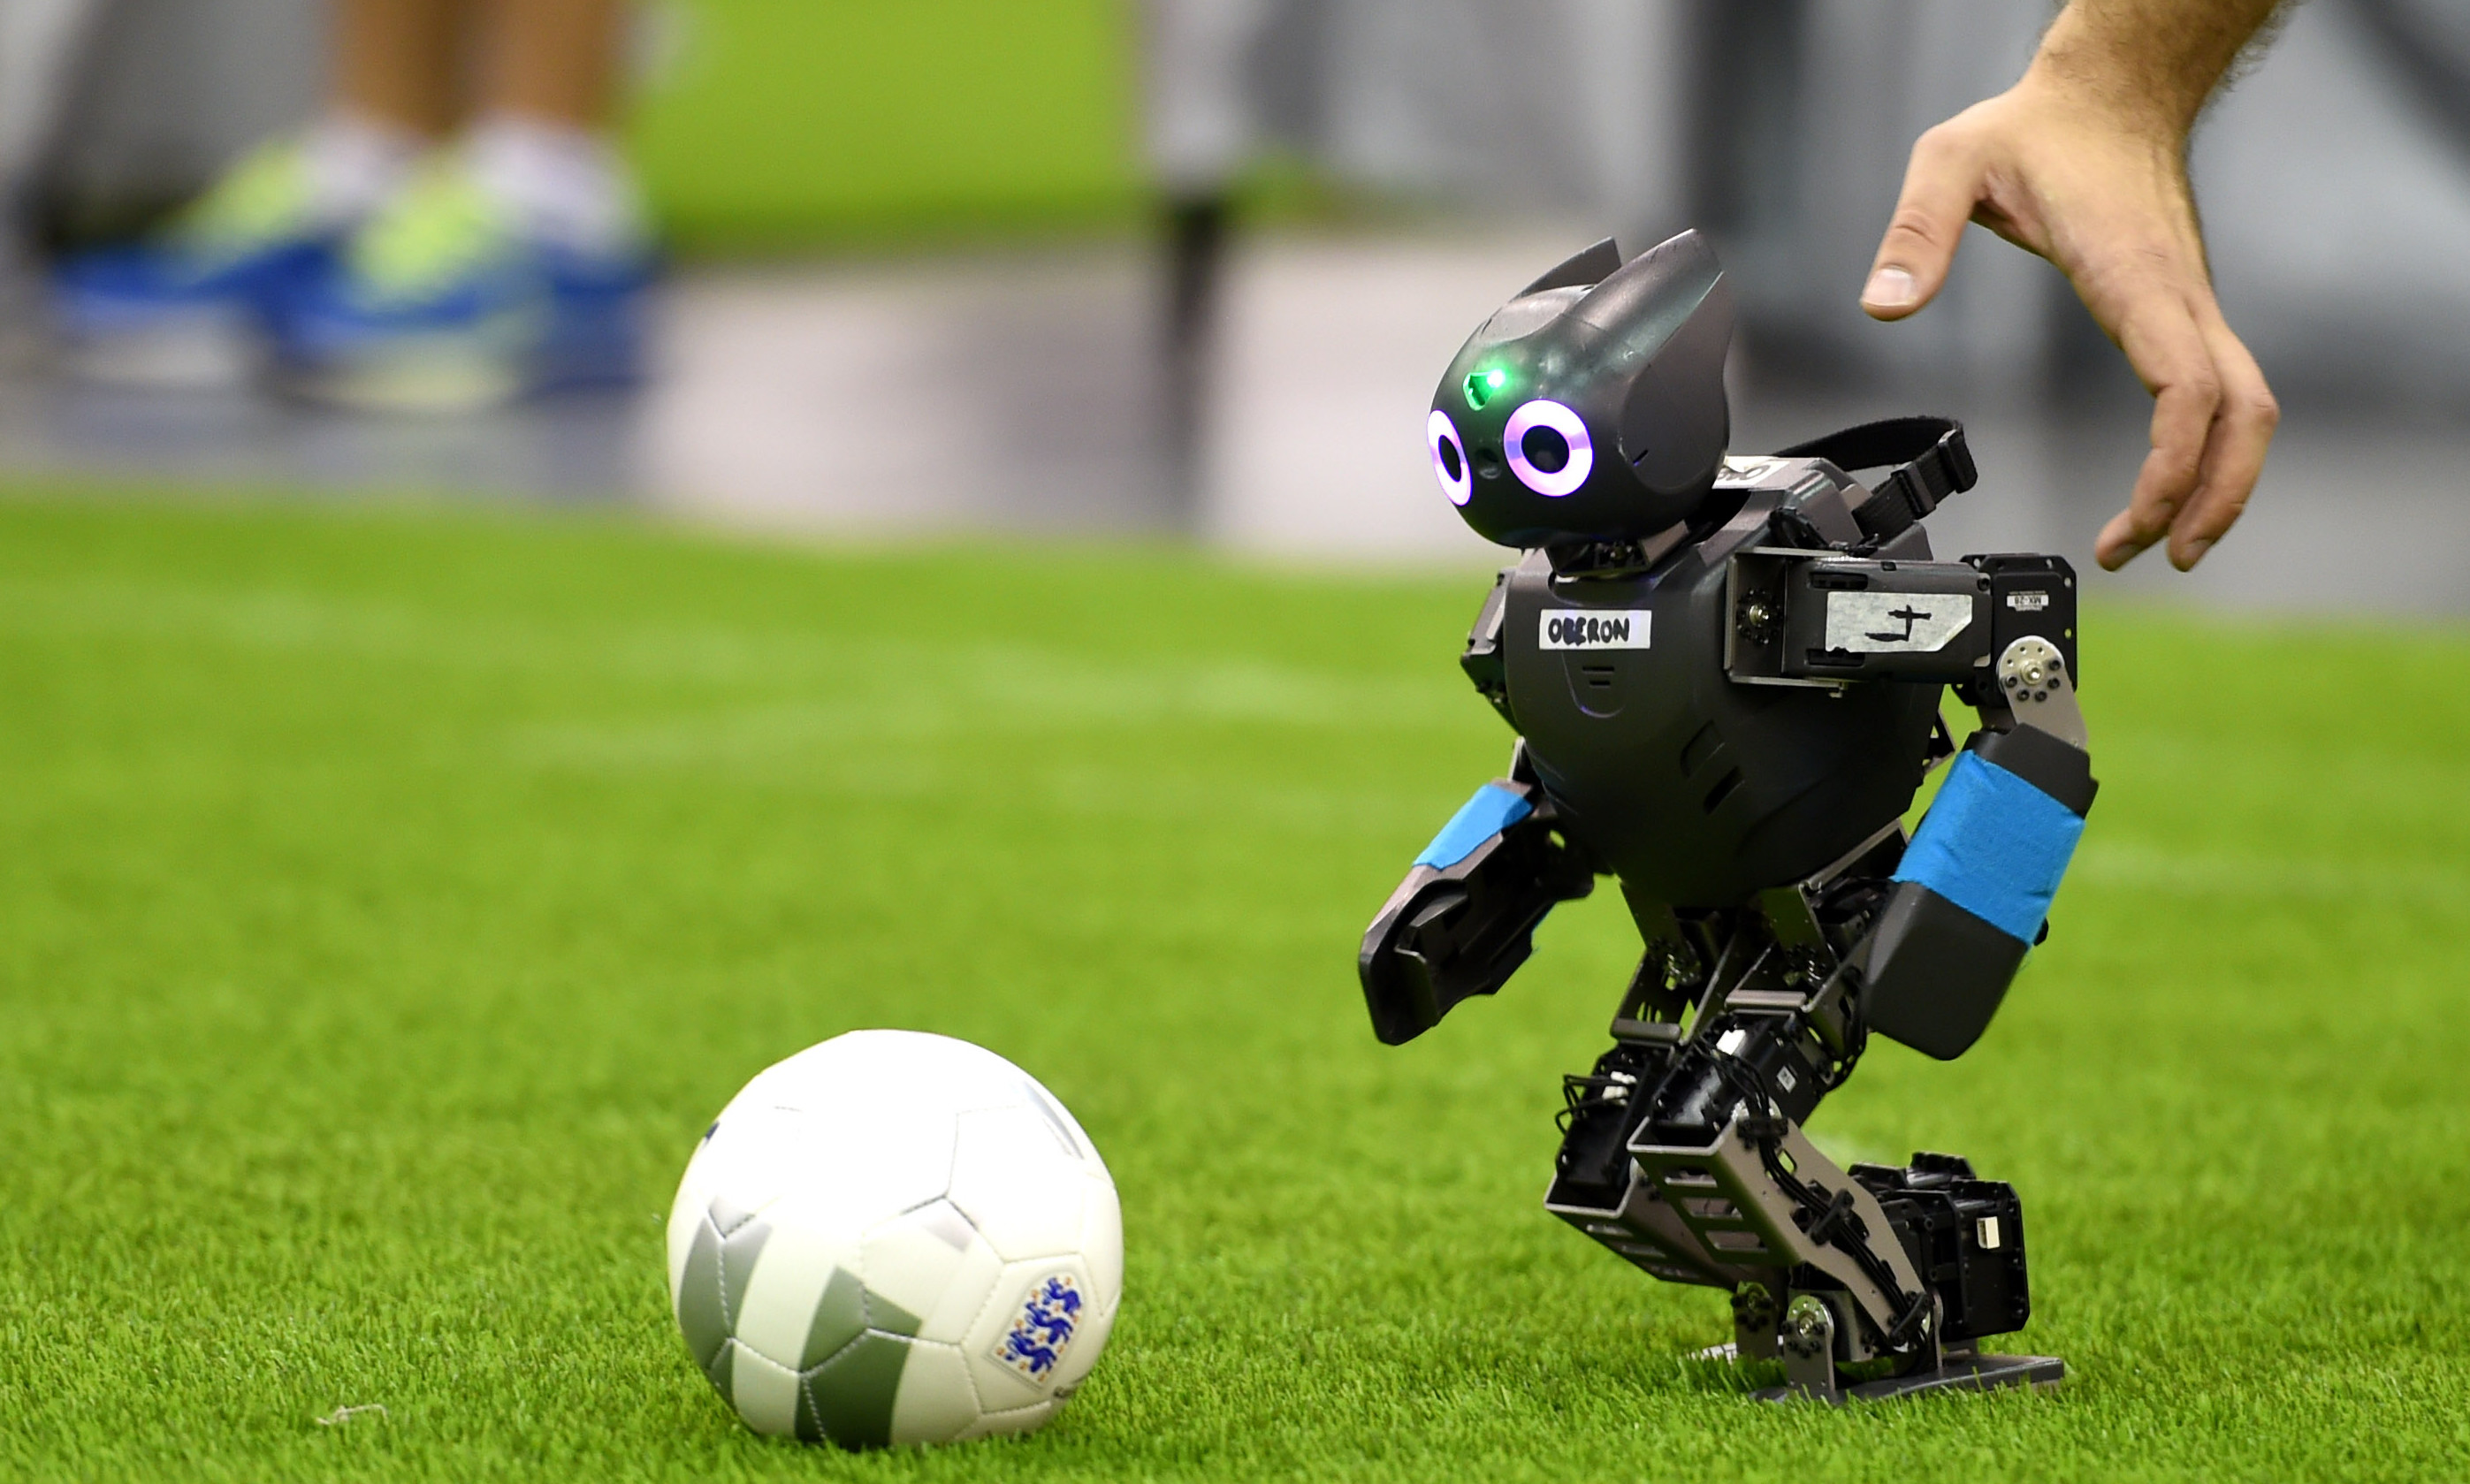 2794x1679 Technology - Robot Soccer Ball Wallpaper